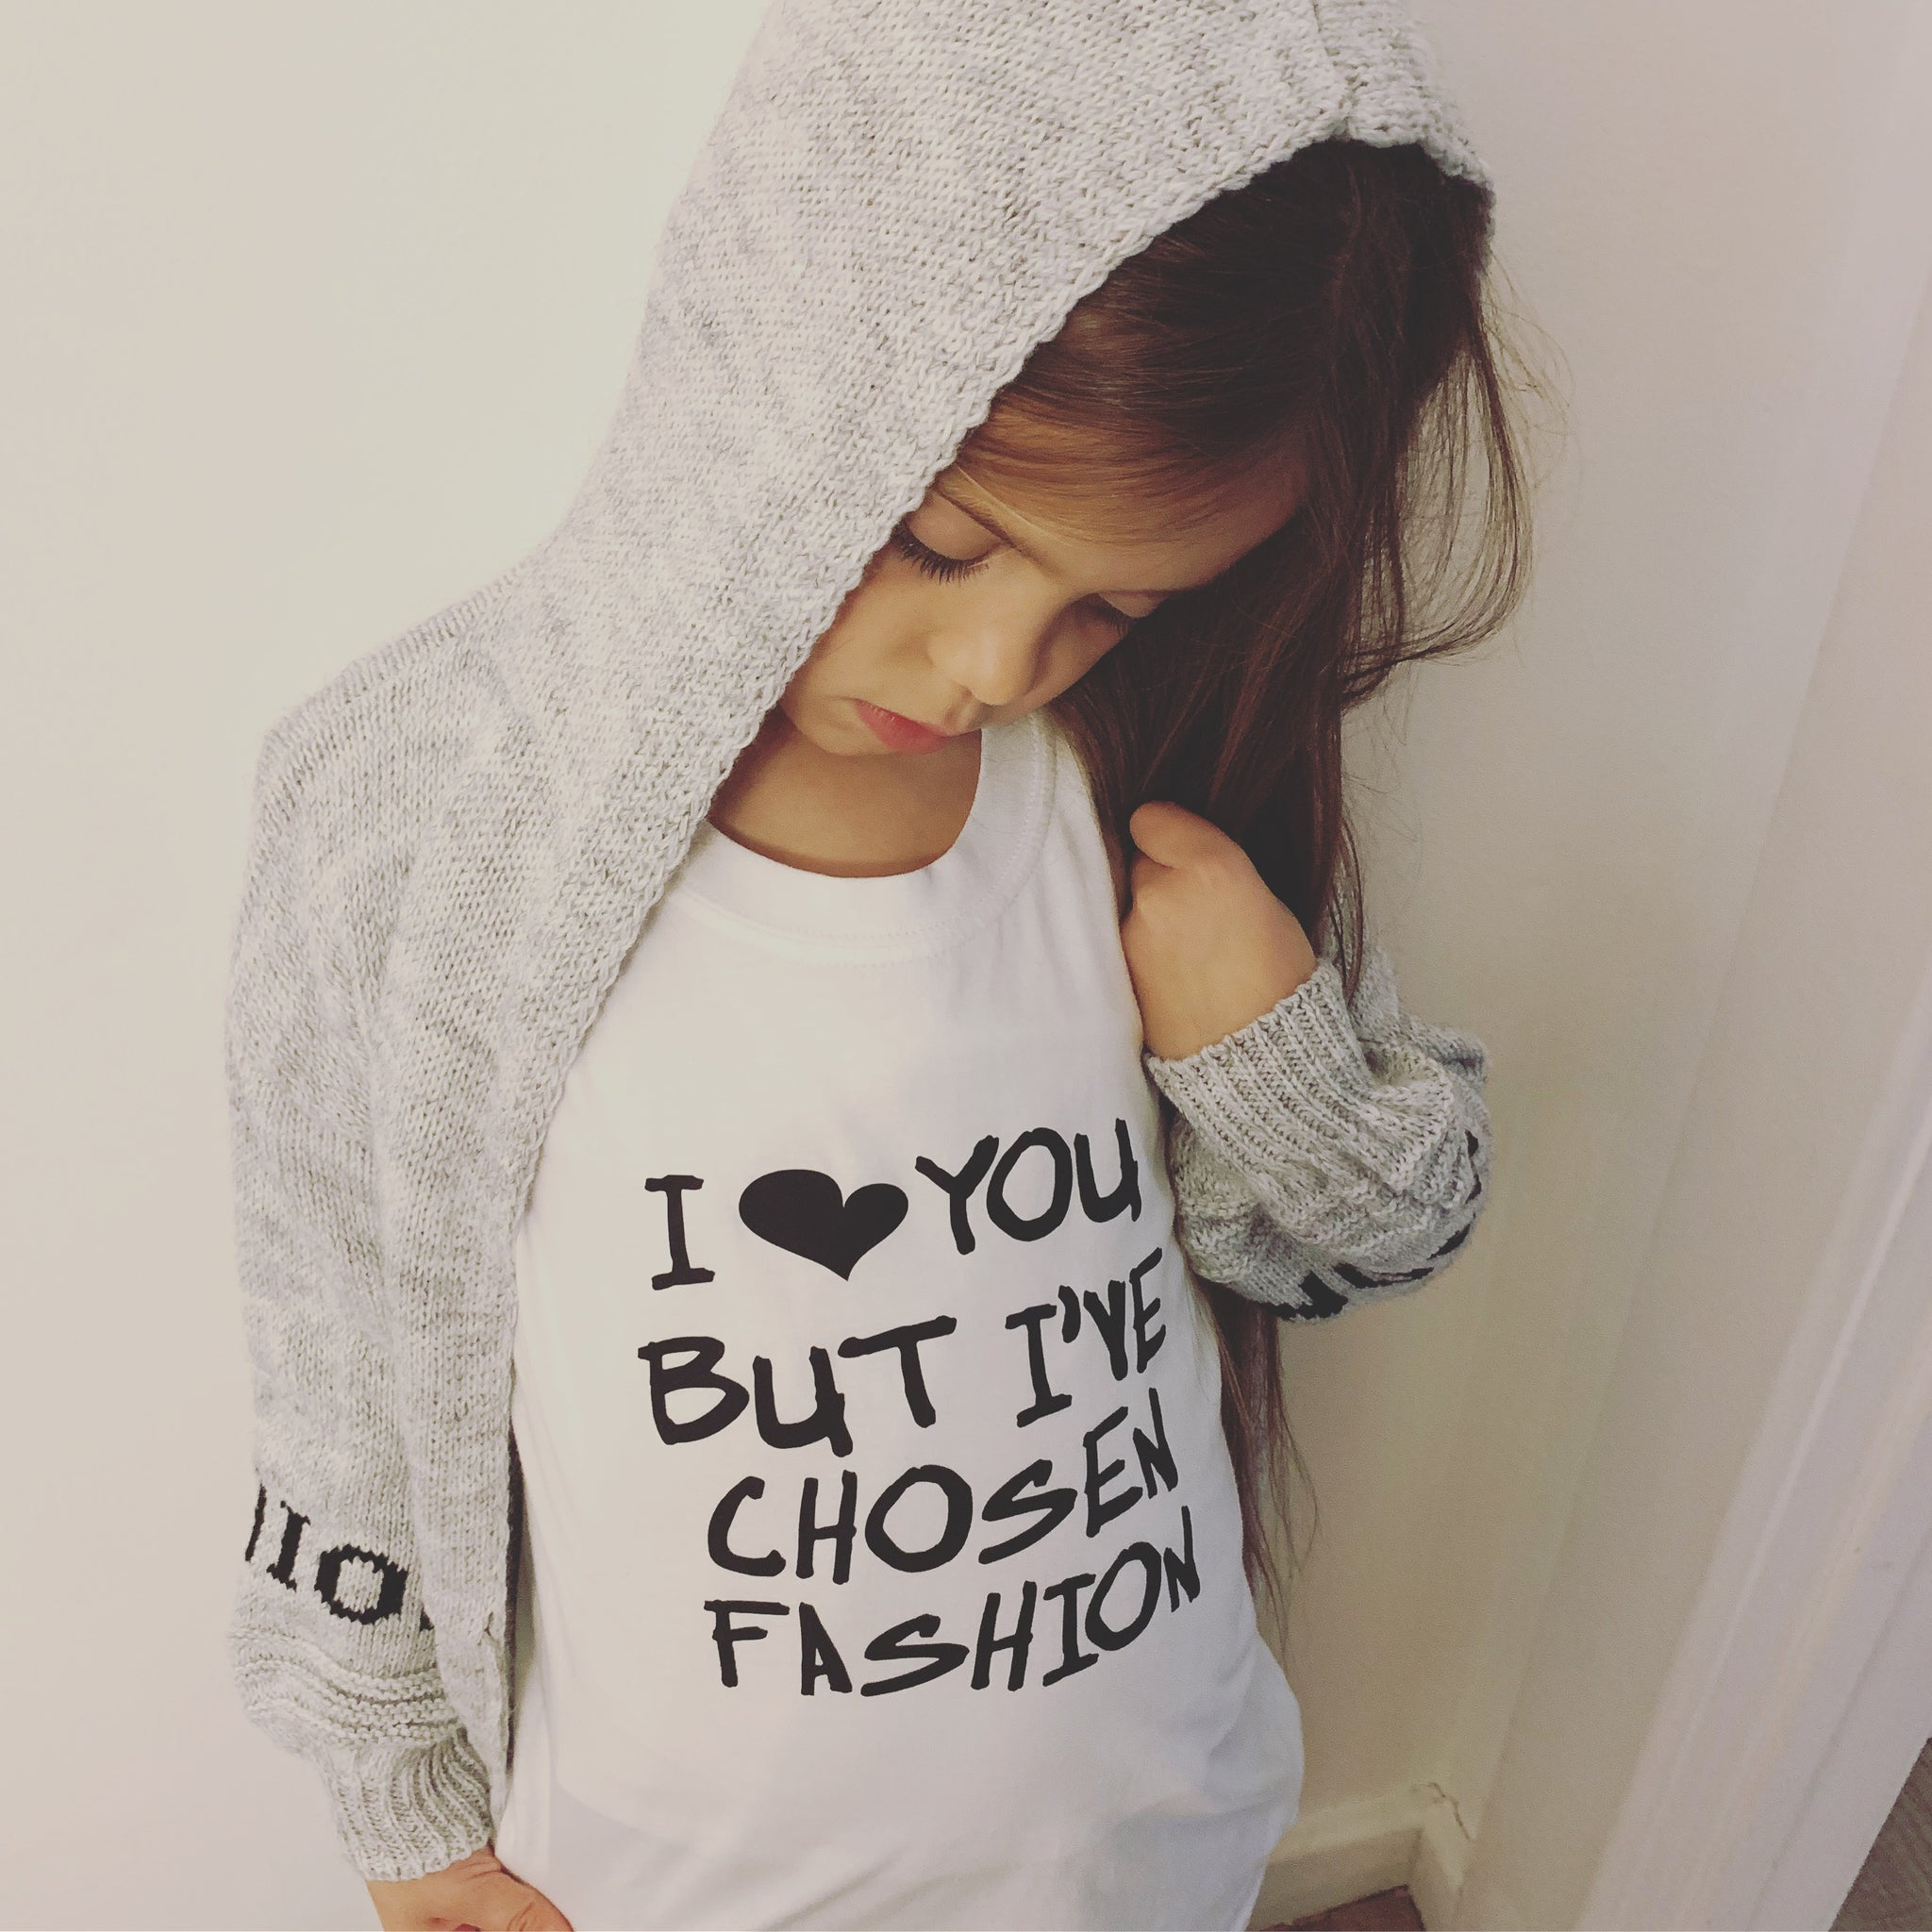 I 🖤 YOU BUT IVE CHOSEN FASHION T SHIRT